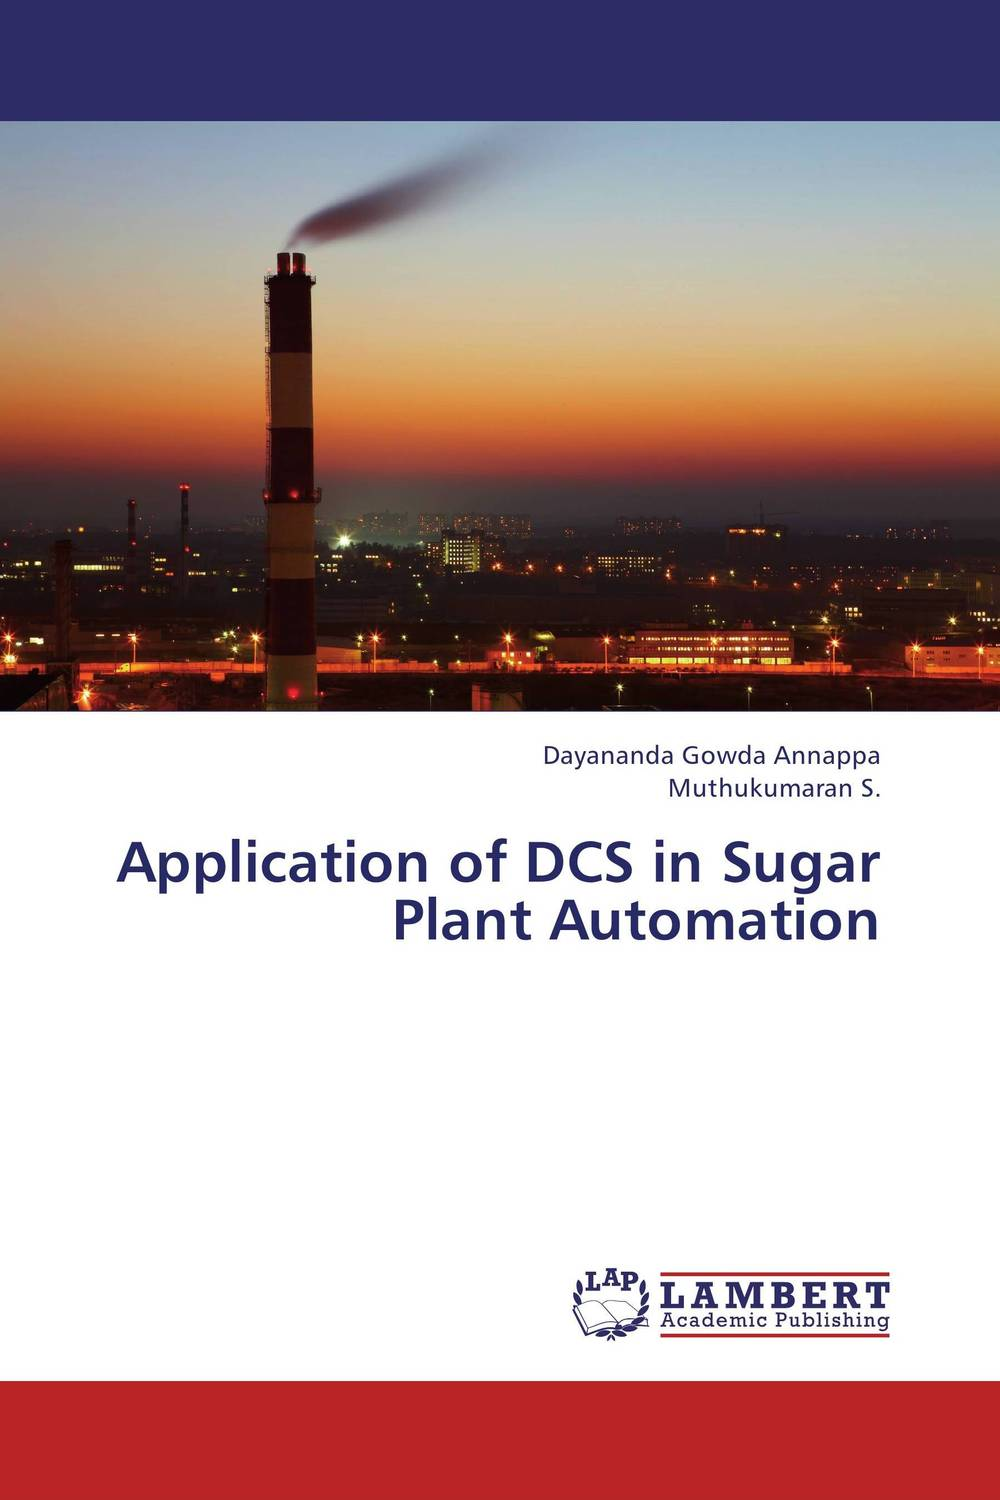 Application of DCS in Sugar Plant Automation i have sugar